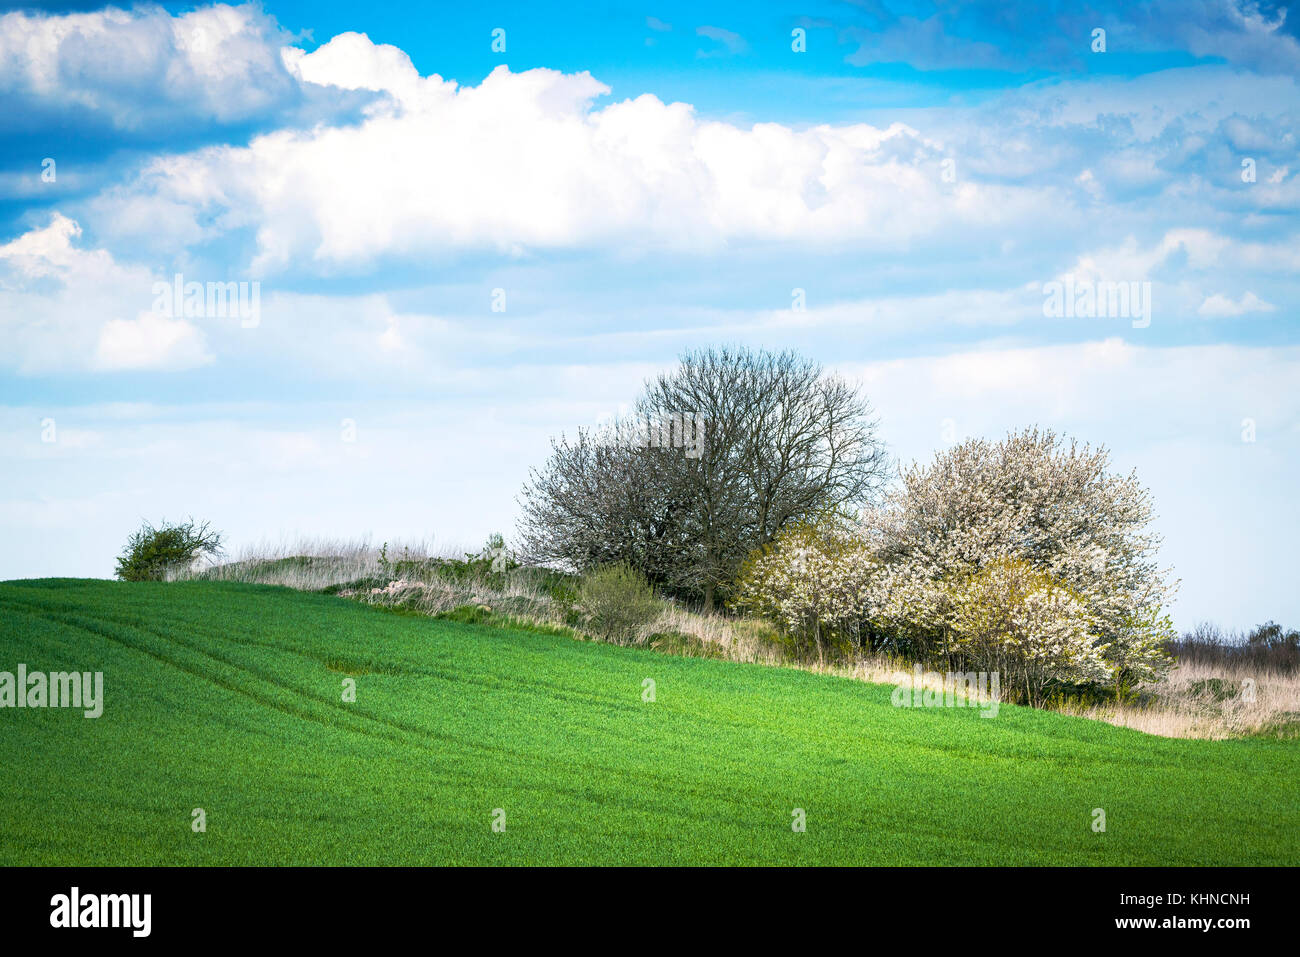 Green meadow in the spring with blooming trees and plants - Stock Image